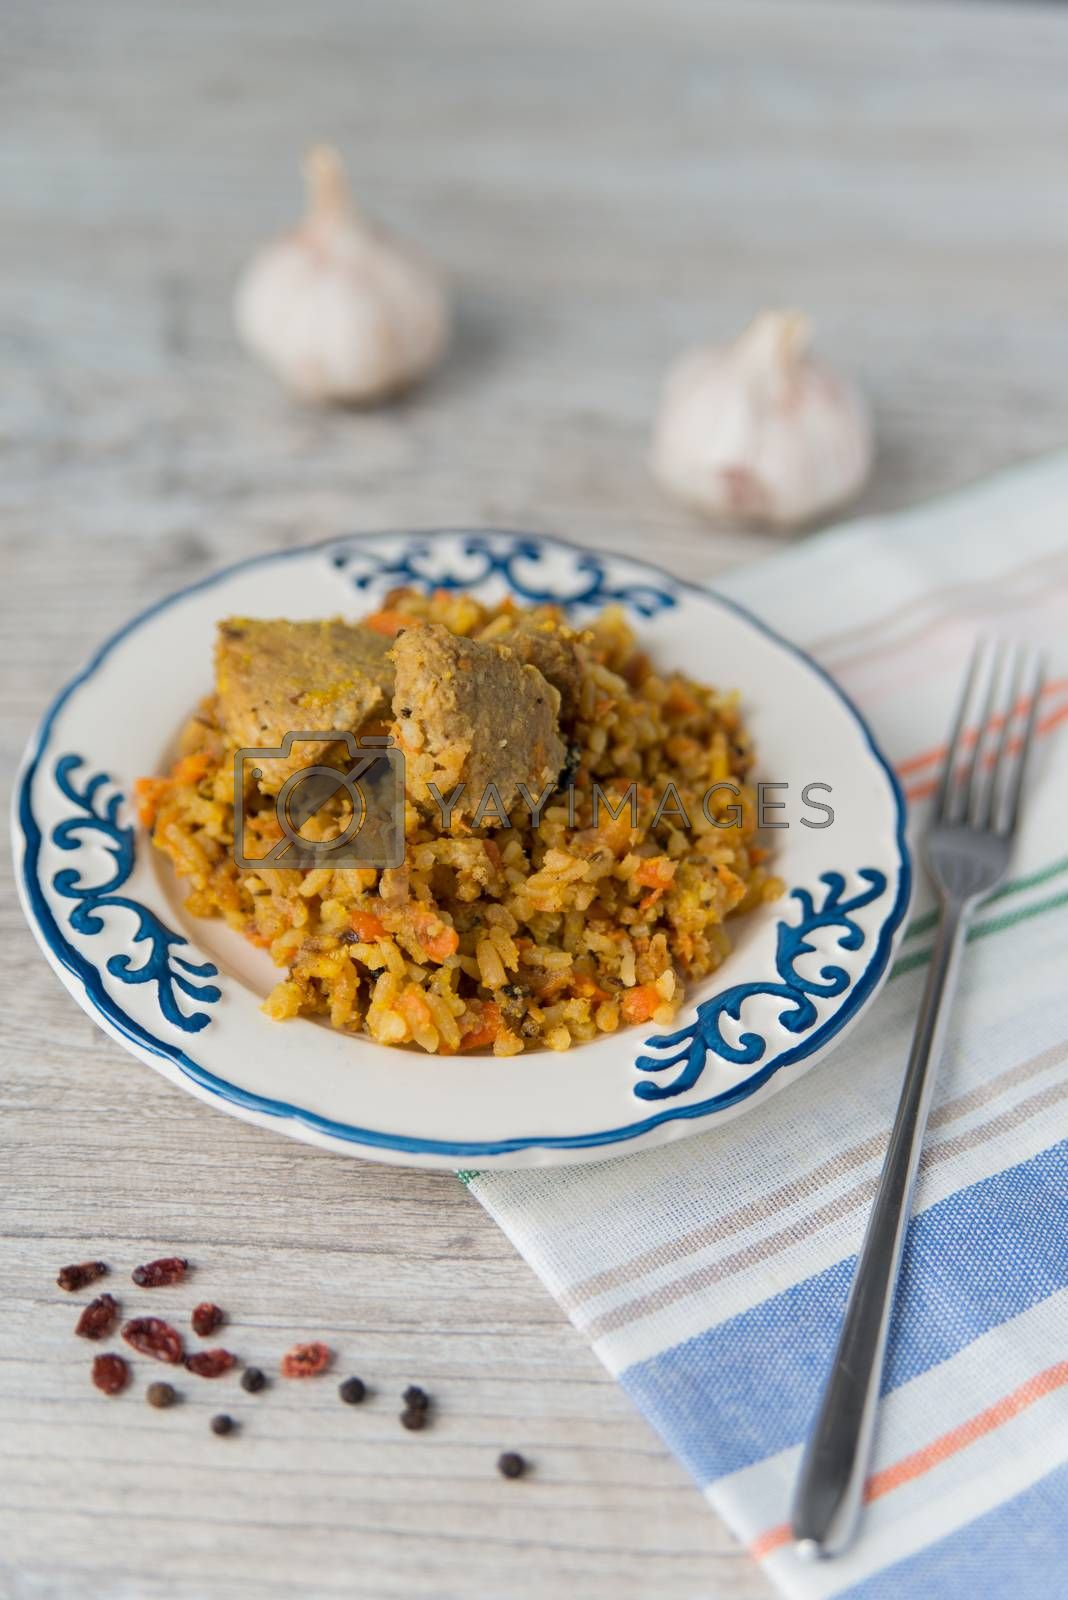 Plate of rice and meat dish pilau by Linaga